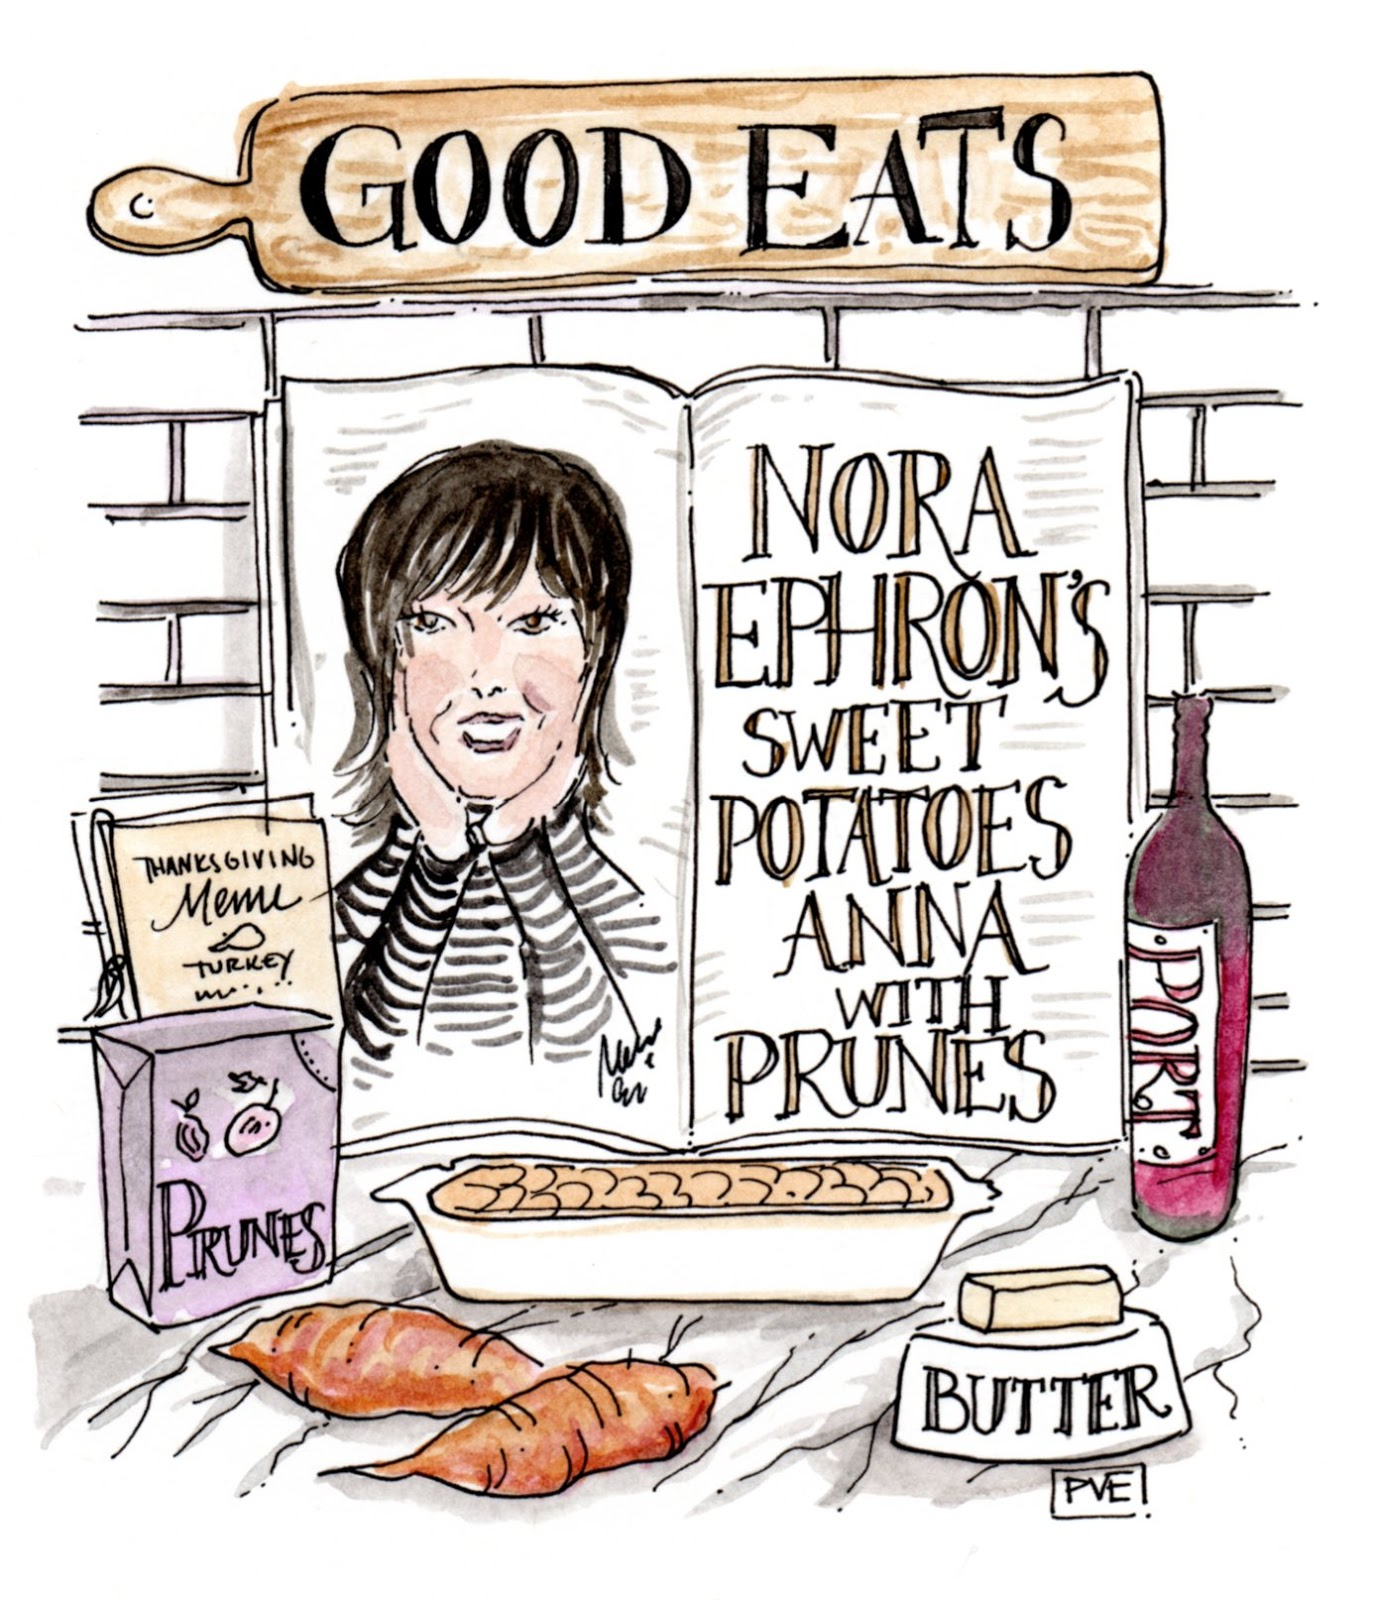 nora ephron essay on aging This article has been corrected see note at the bottom for details nora ephron, who cast an acerbic eye on relationships, metropolitan living and aging in essays, books, plays and hit movies.